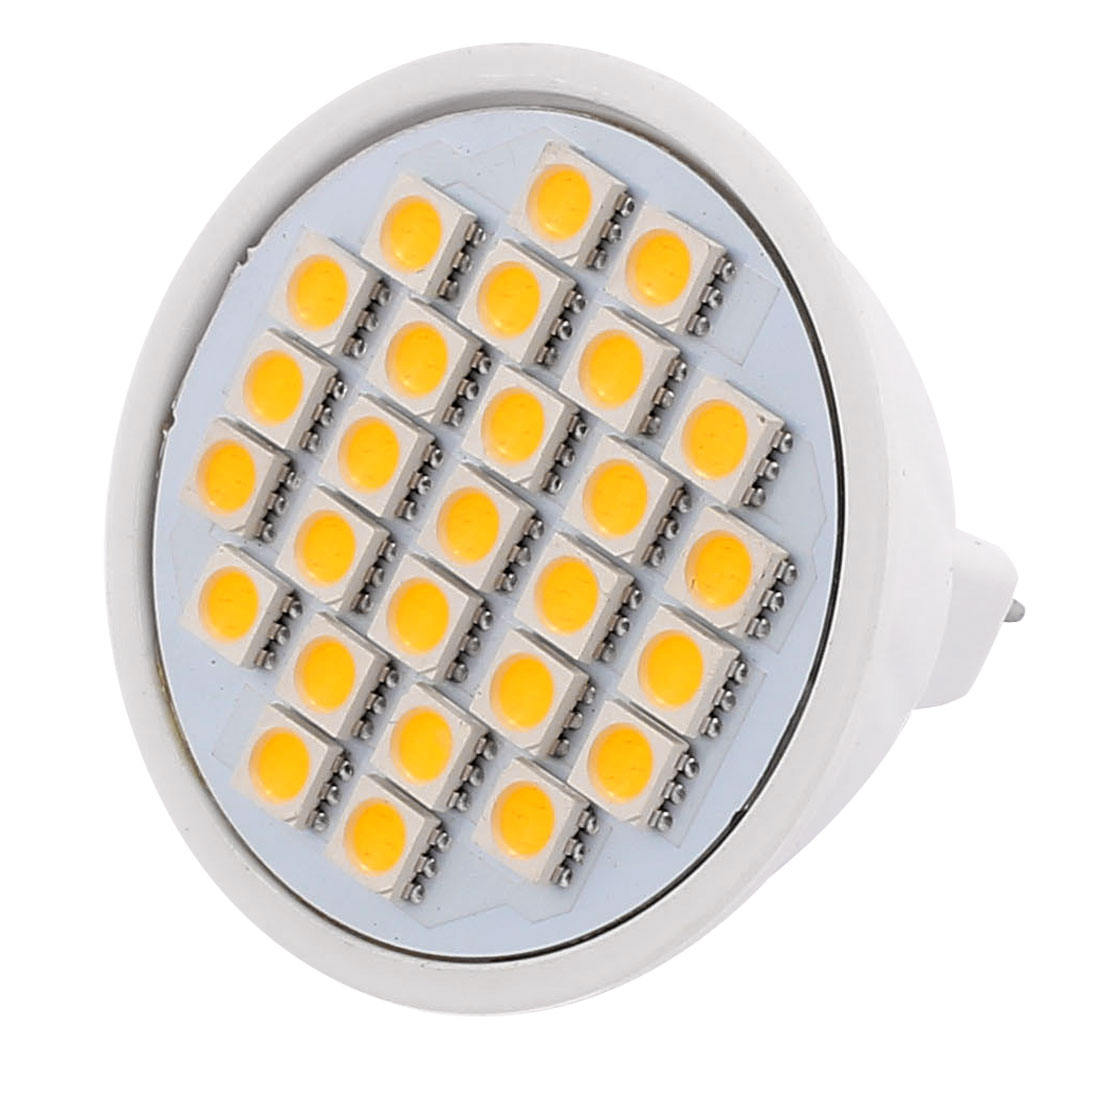 220V 5W MR16 5050 SMD 27 LEDs LED Bulb Light Spotlight Lamp Warm White